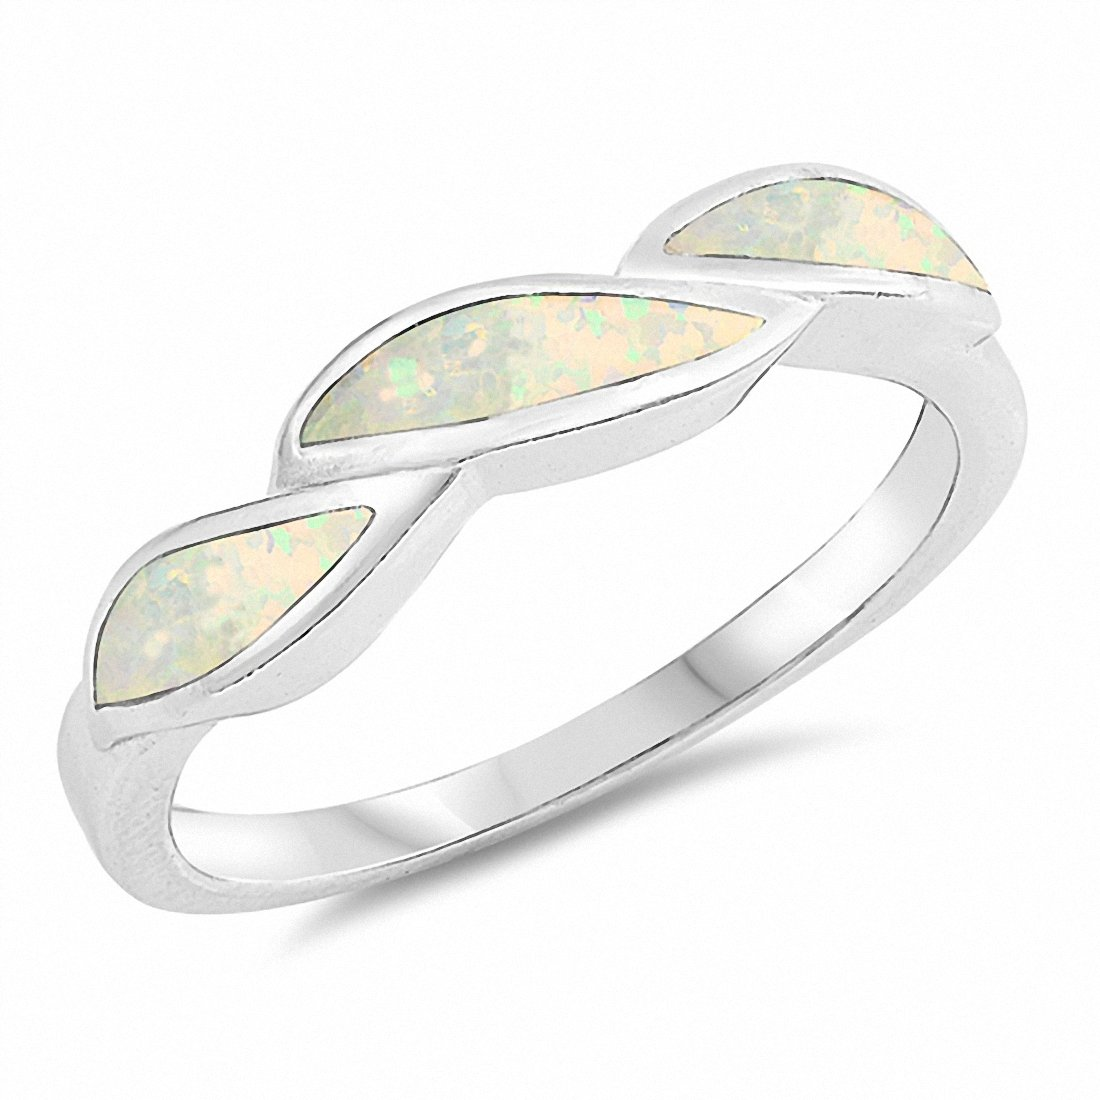 Fashion Band Created Opal 925 Sterling Silver Choose Color